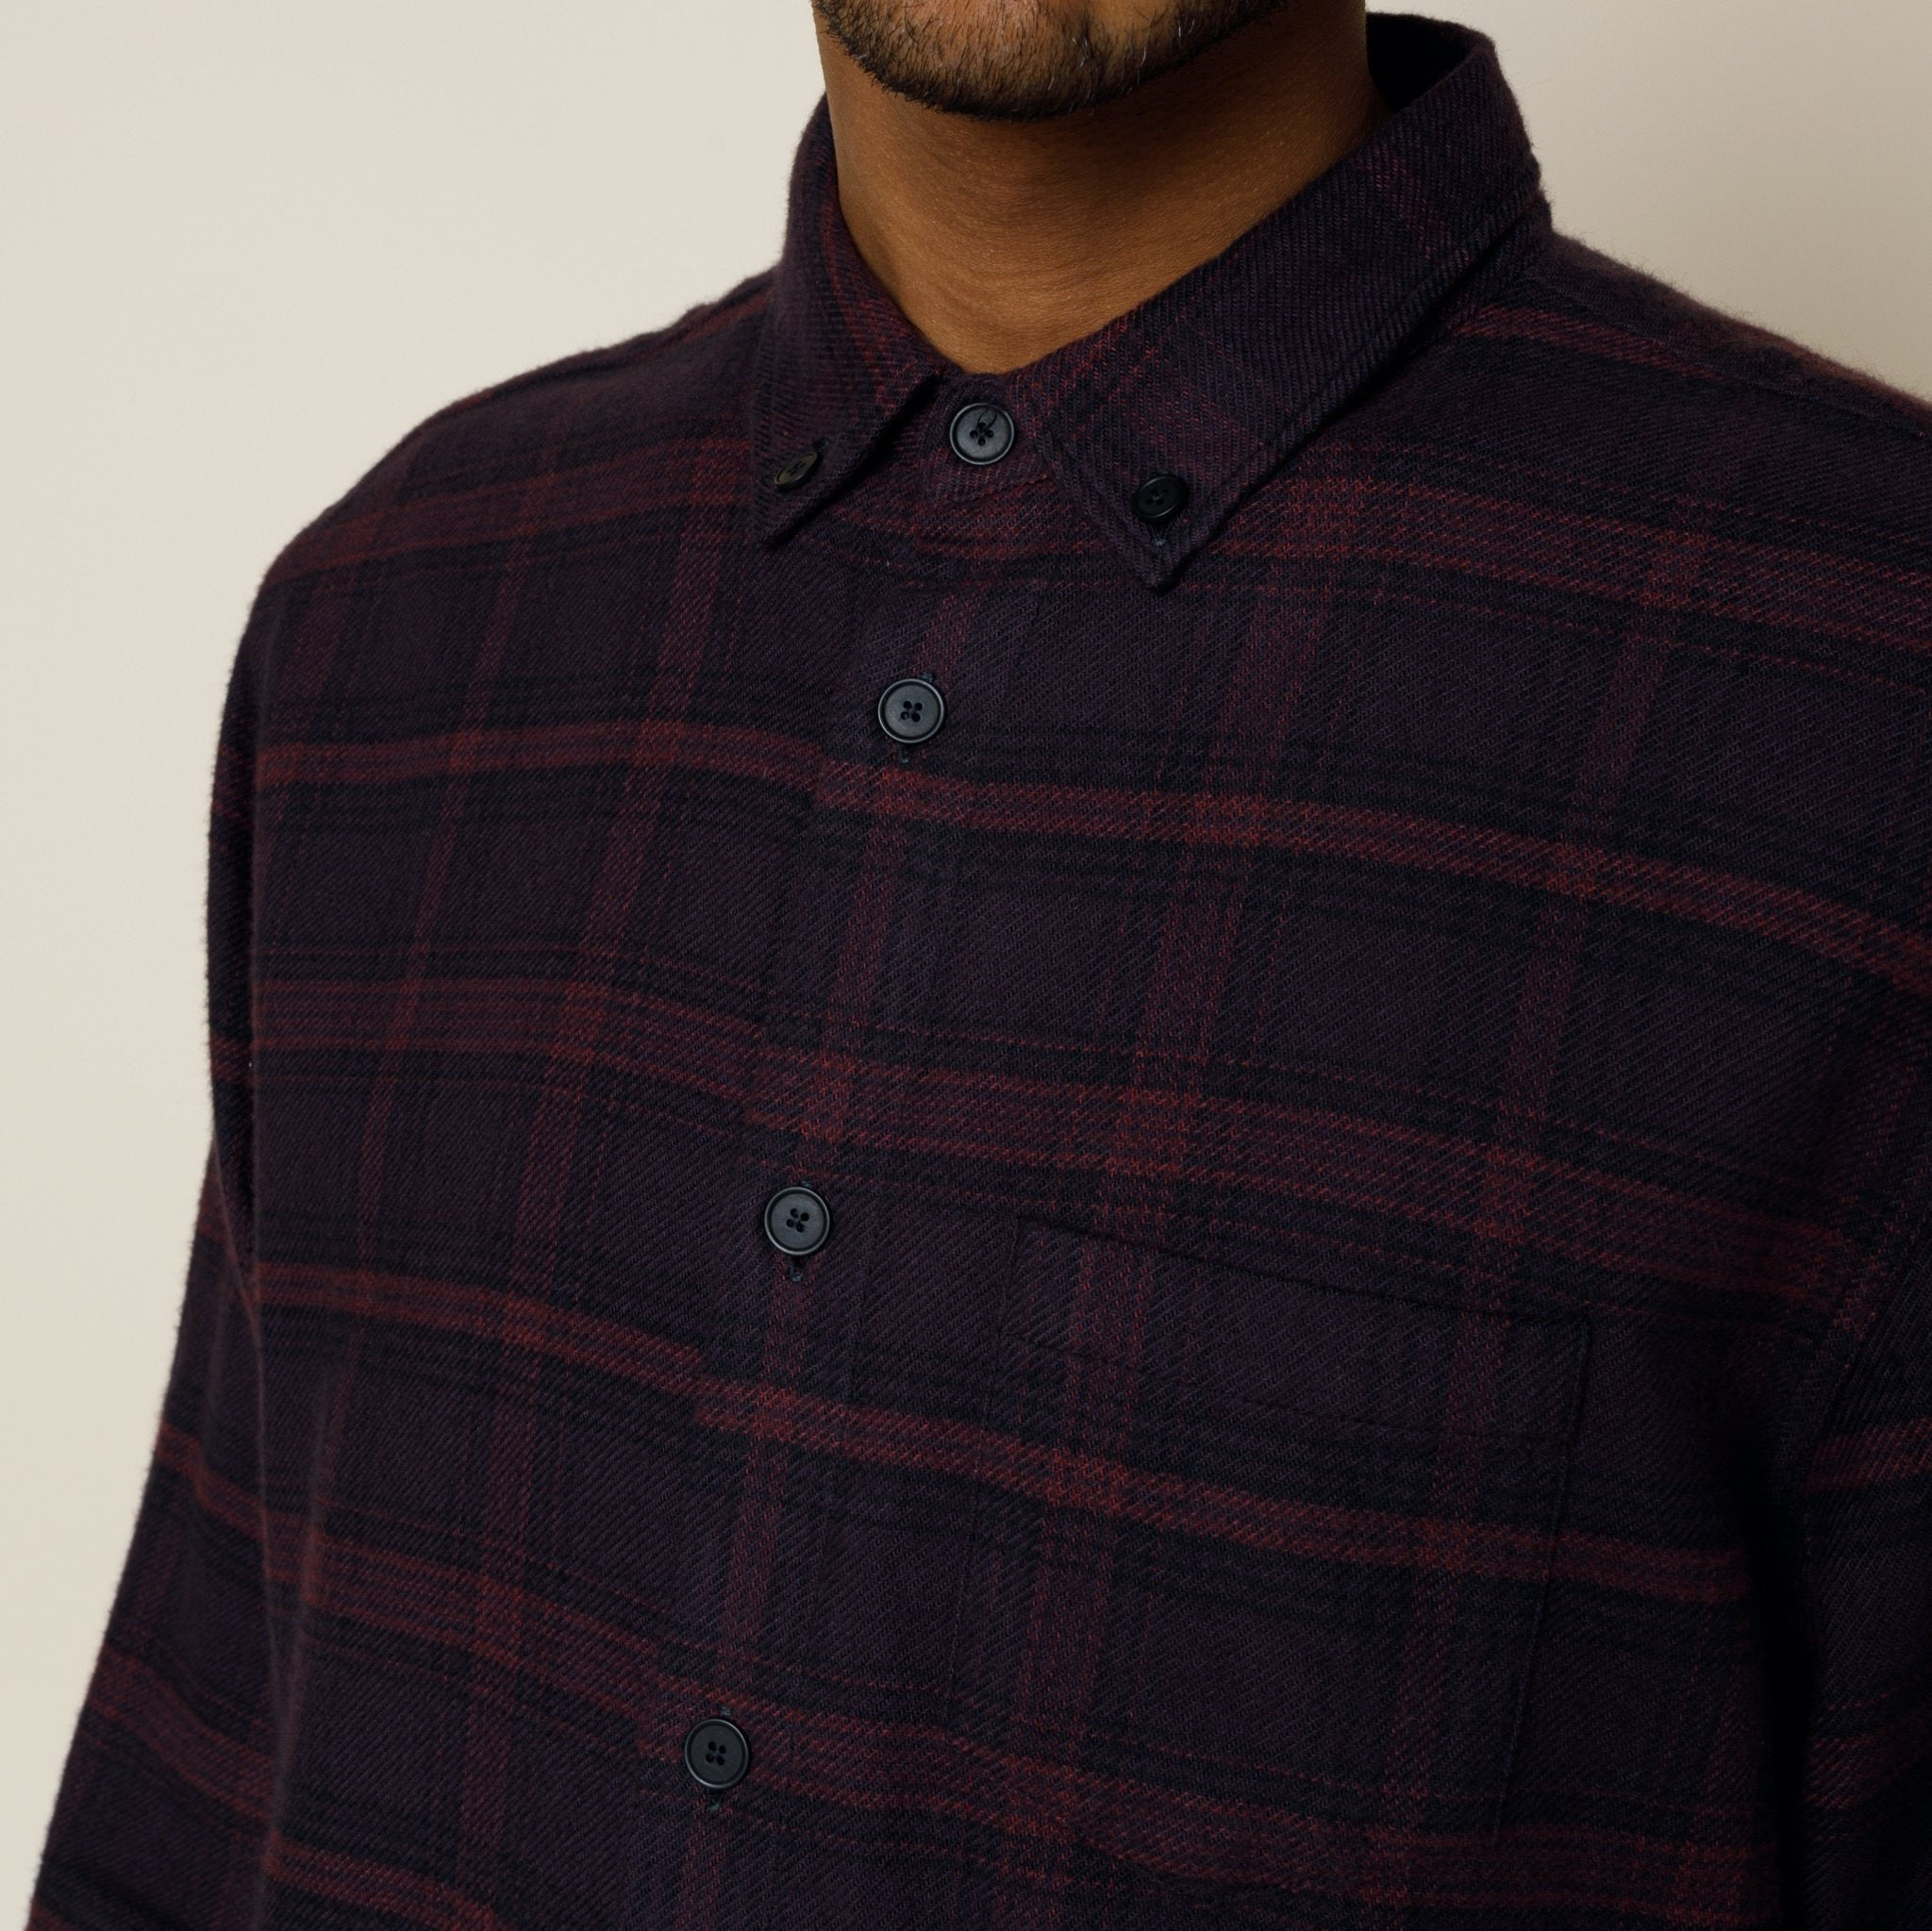 Relaxed Fit Shirt - Aubergine Check